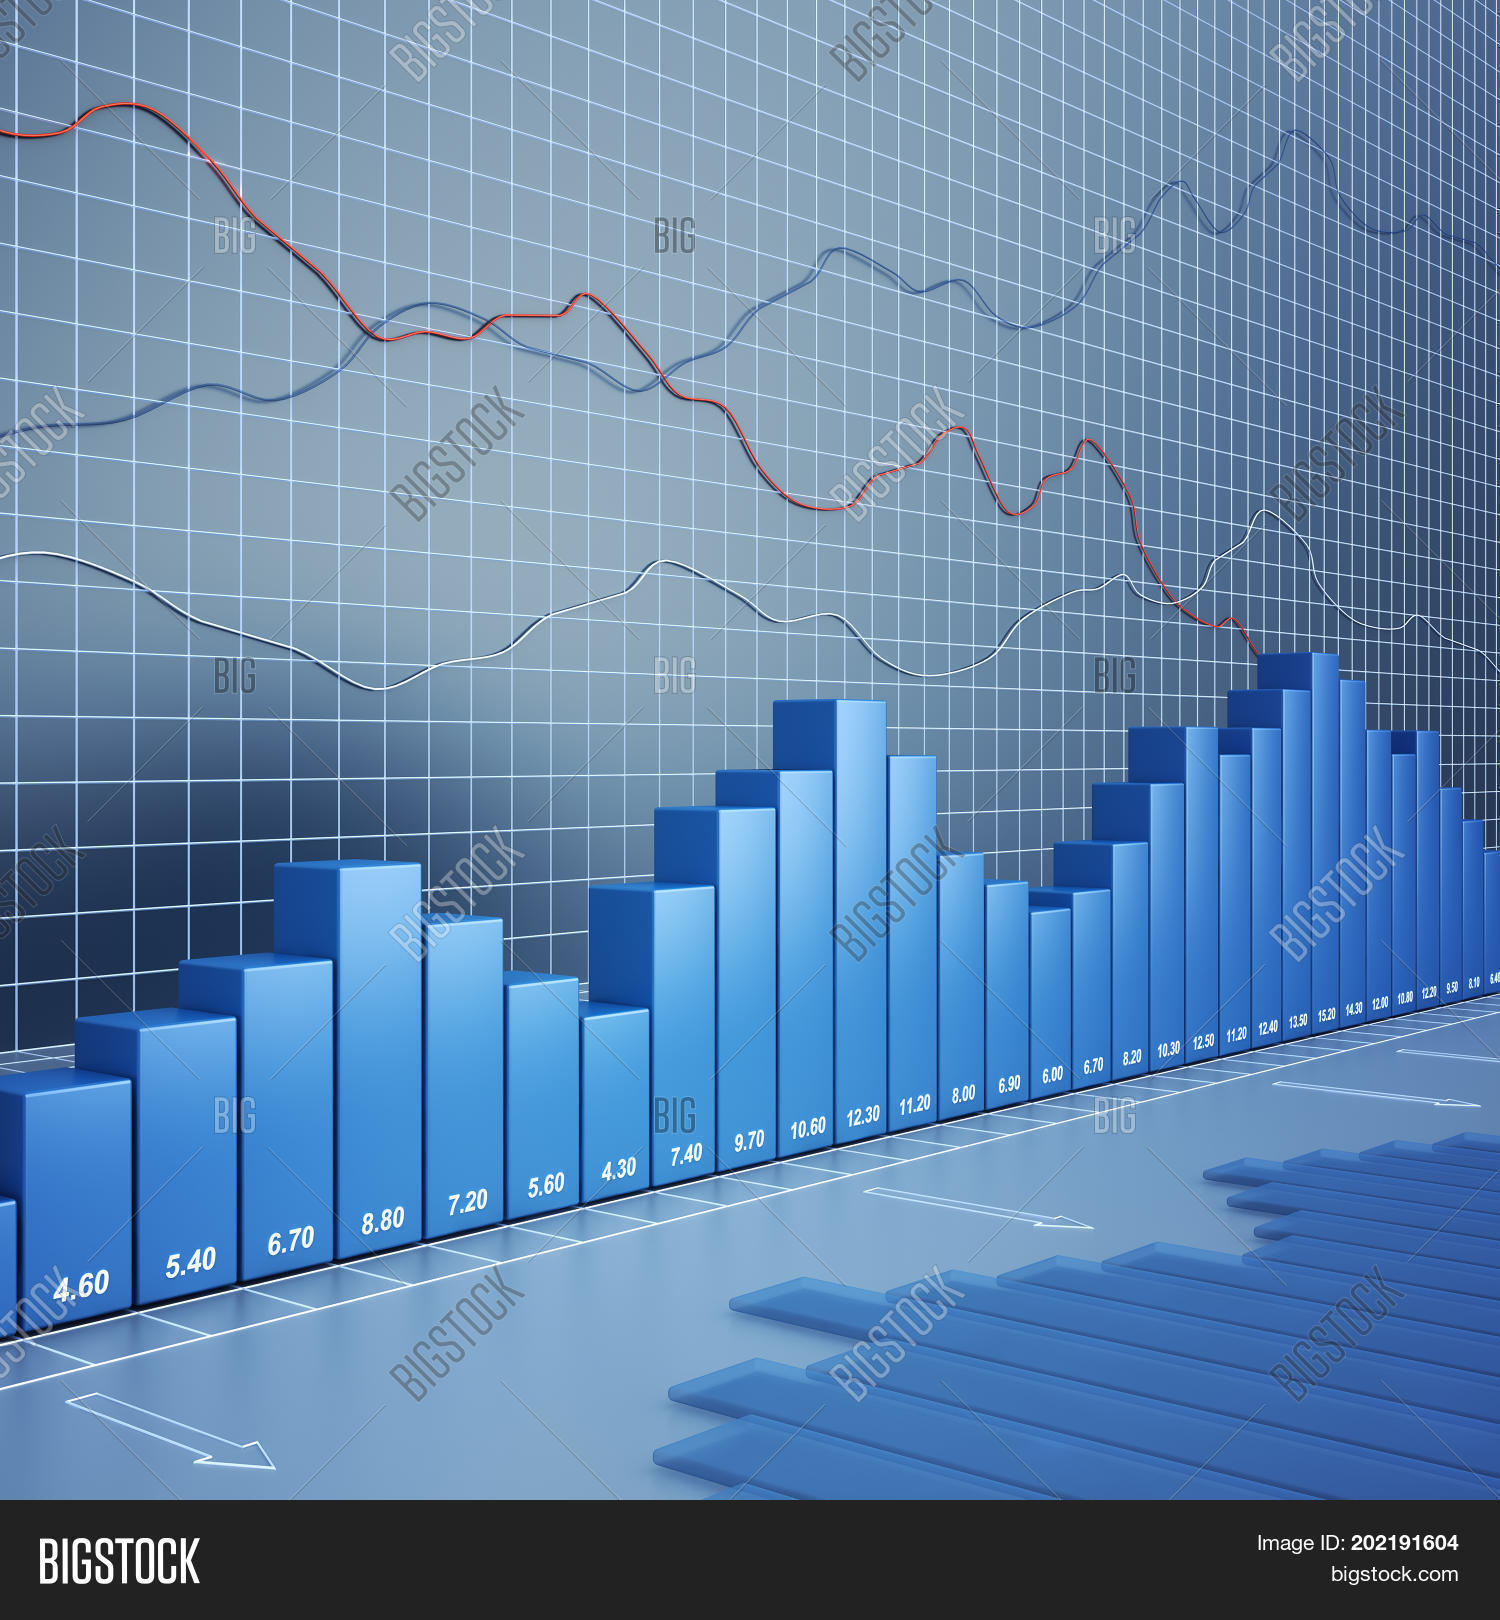 finance chart high image photo free trial bigstock finance chart high image photo free